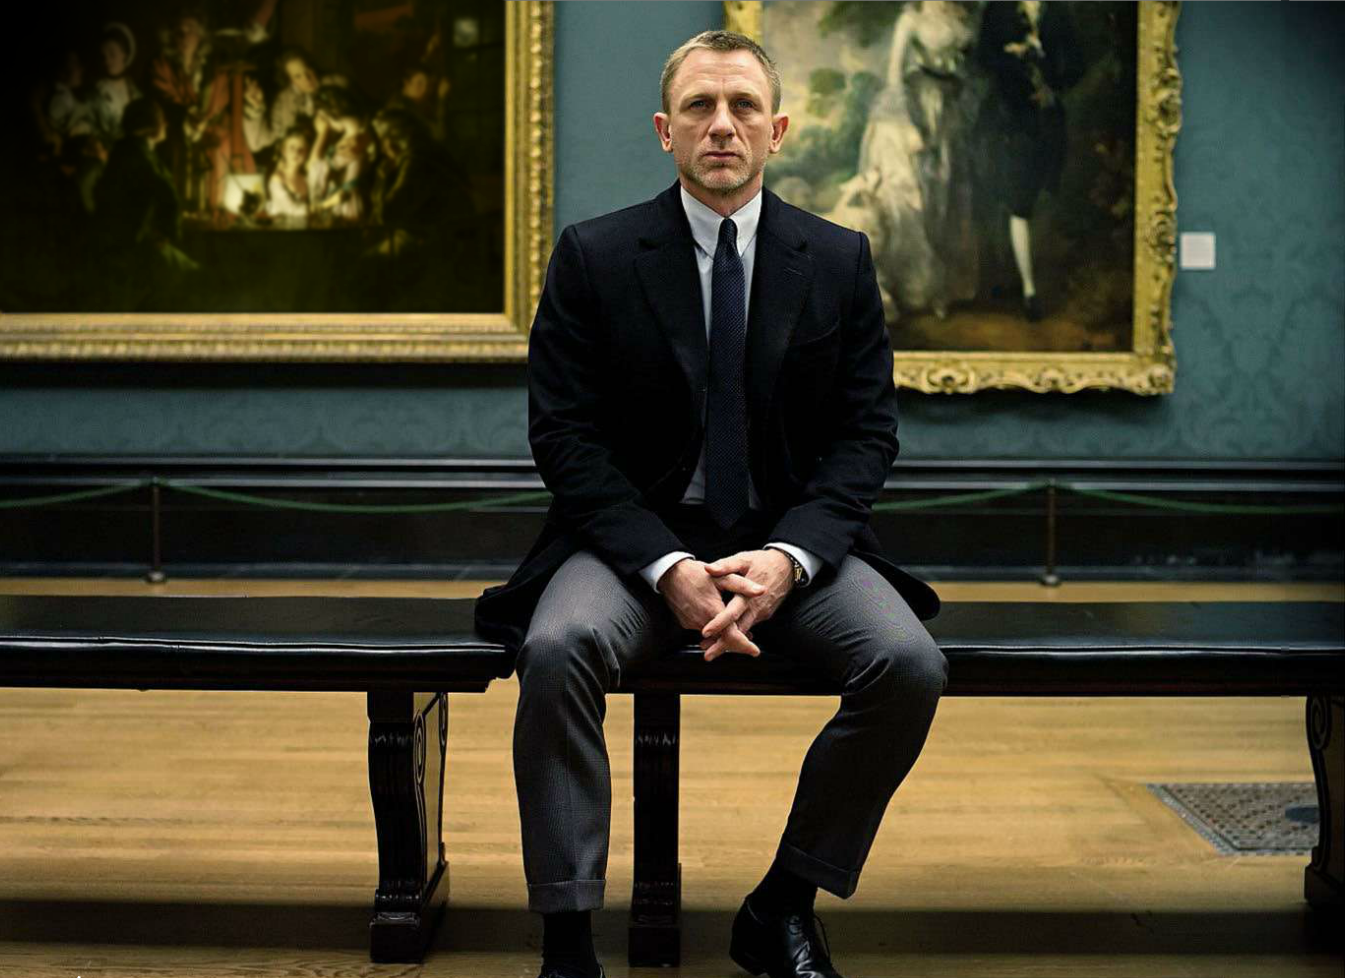 Sam Mendes' mortality-obsessed Skyfall seemed to undo the rebooting 007 got in Casino Royale. Sort of.